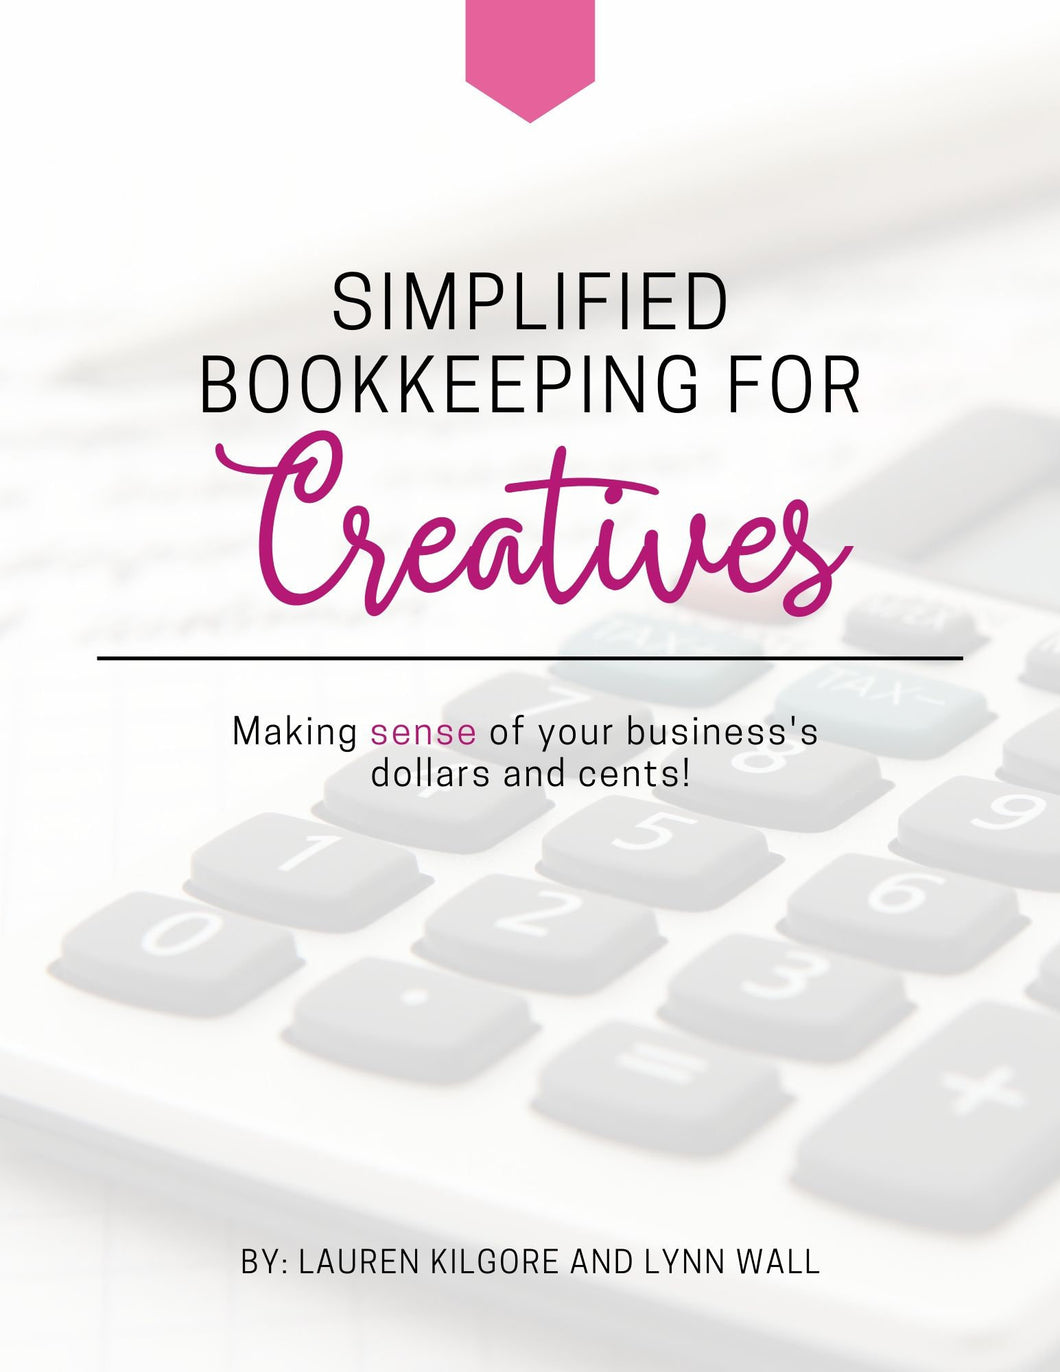 Bookkeeping Guide, Simplified Bookkeeping for Creatives, Learn Accounting for Small Business Owners with Templates